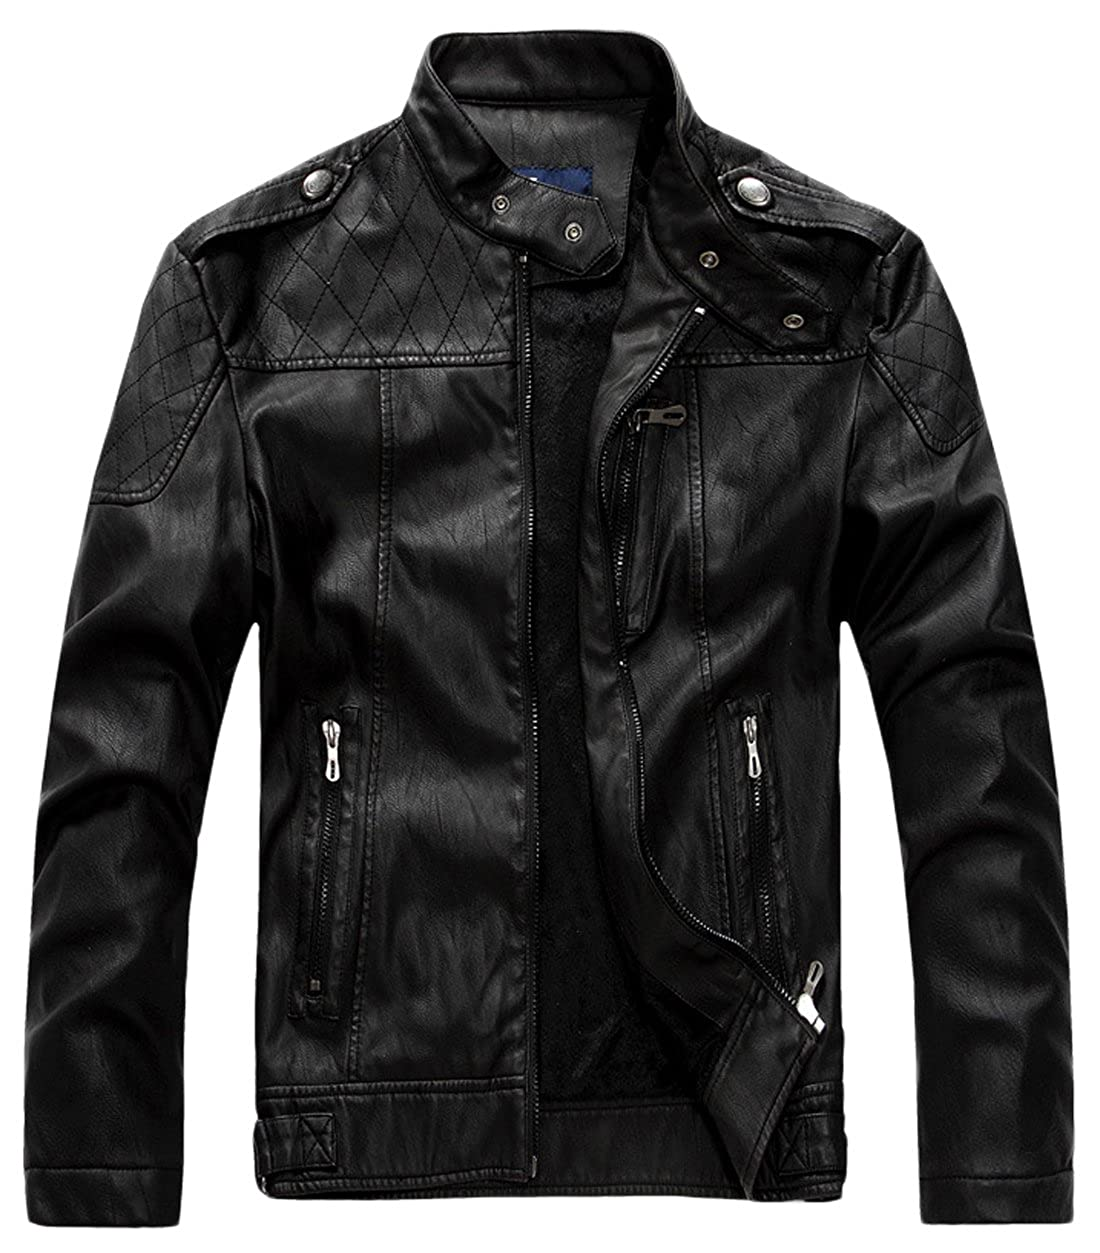 A Cool Leather Jacket